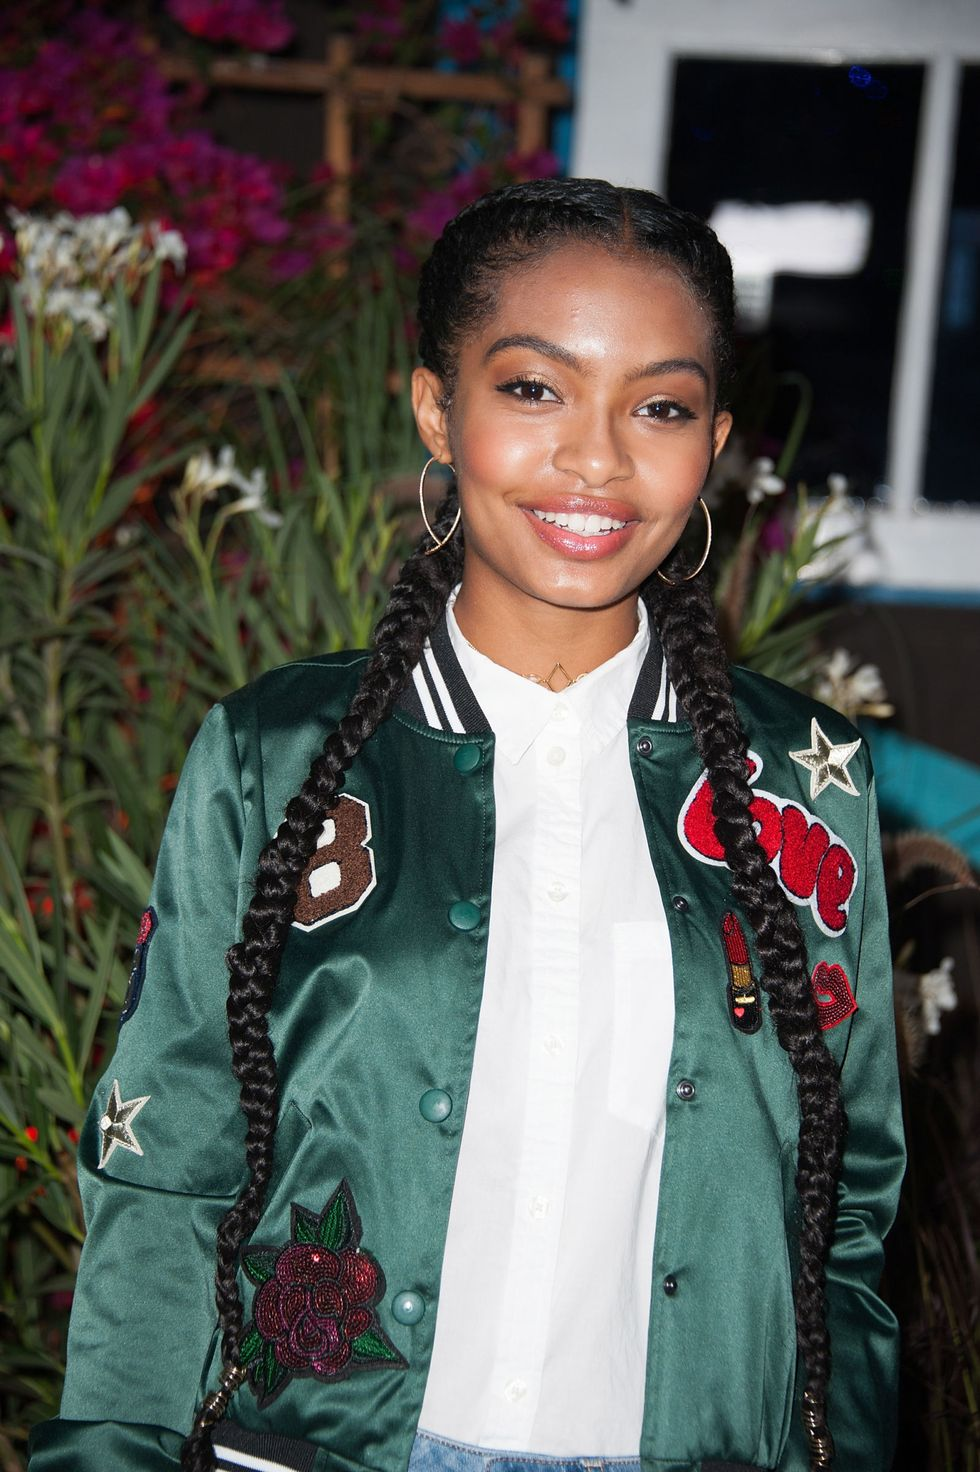 Yara Shahidi Grownish star Shahidi changes her hair game constantly. Still though, ain't nothing wrong with smart and simple double French braids.